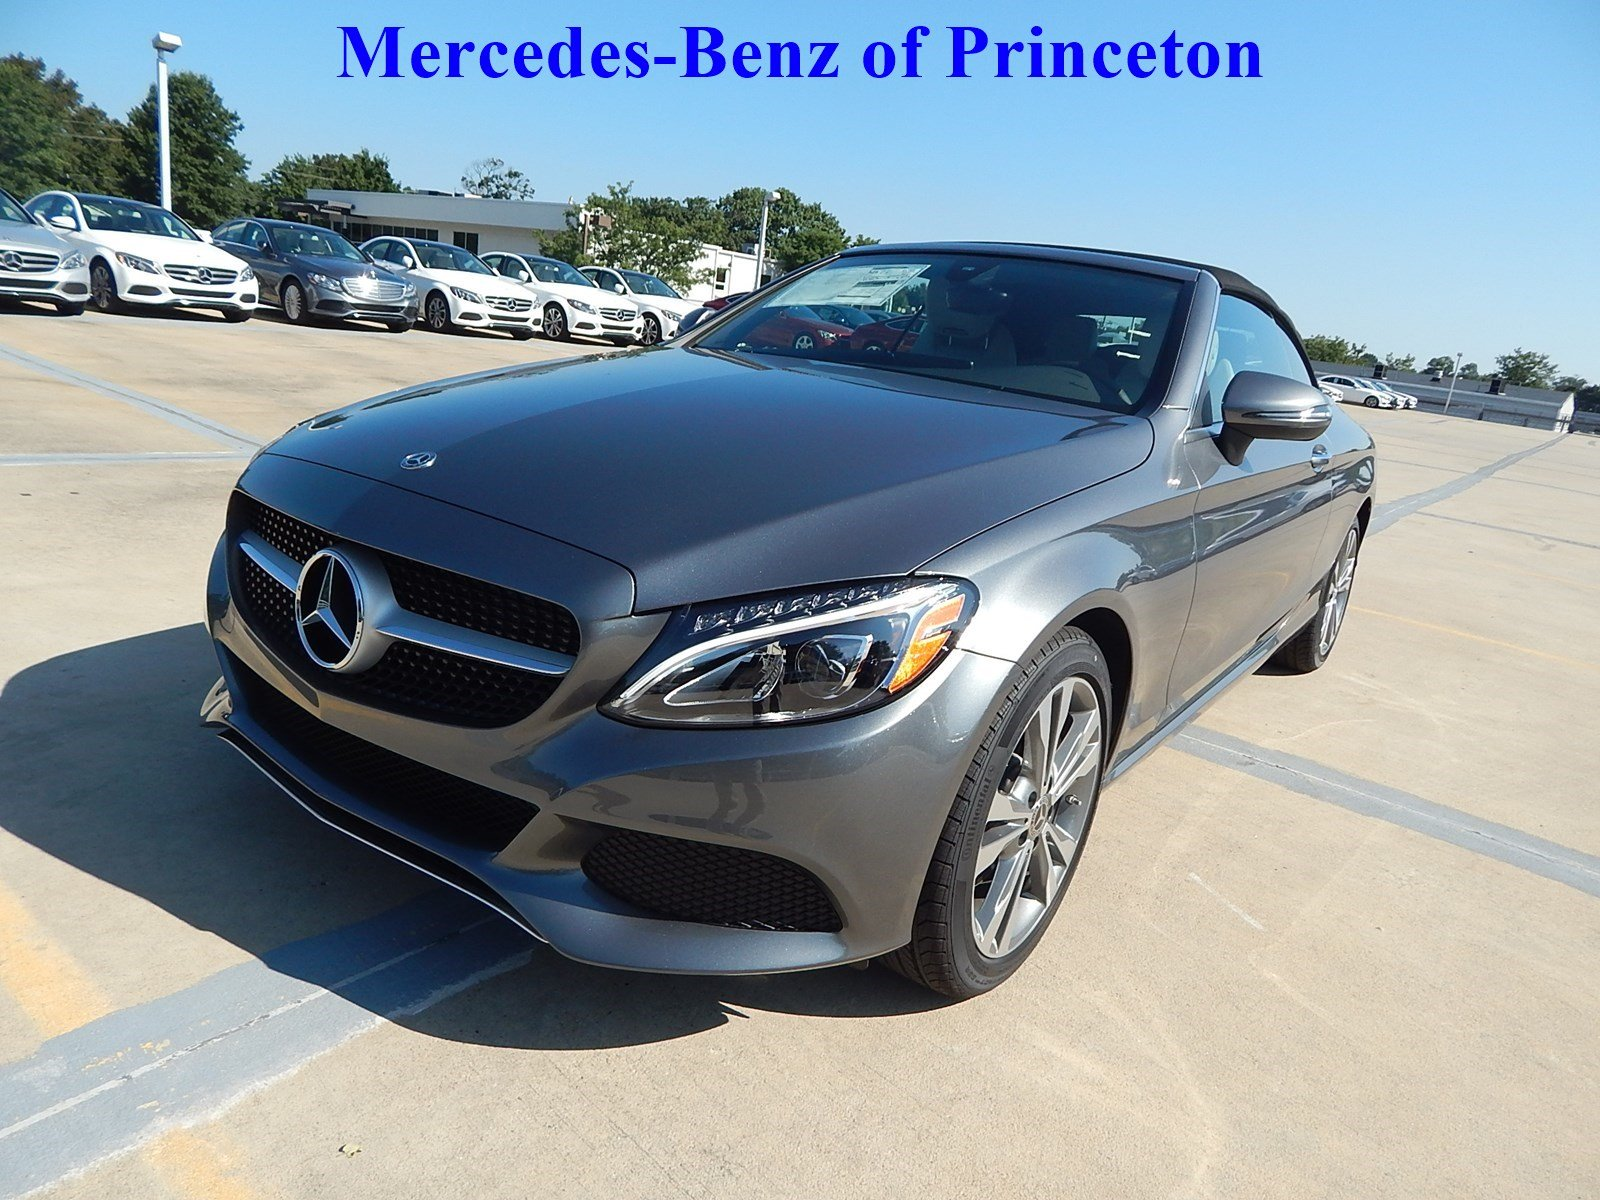 New 2018 mercedes benz c class c 300 cabriolet in for Mercedes benz princeton